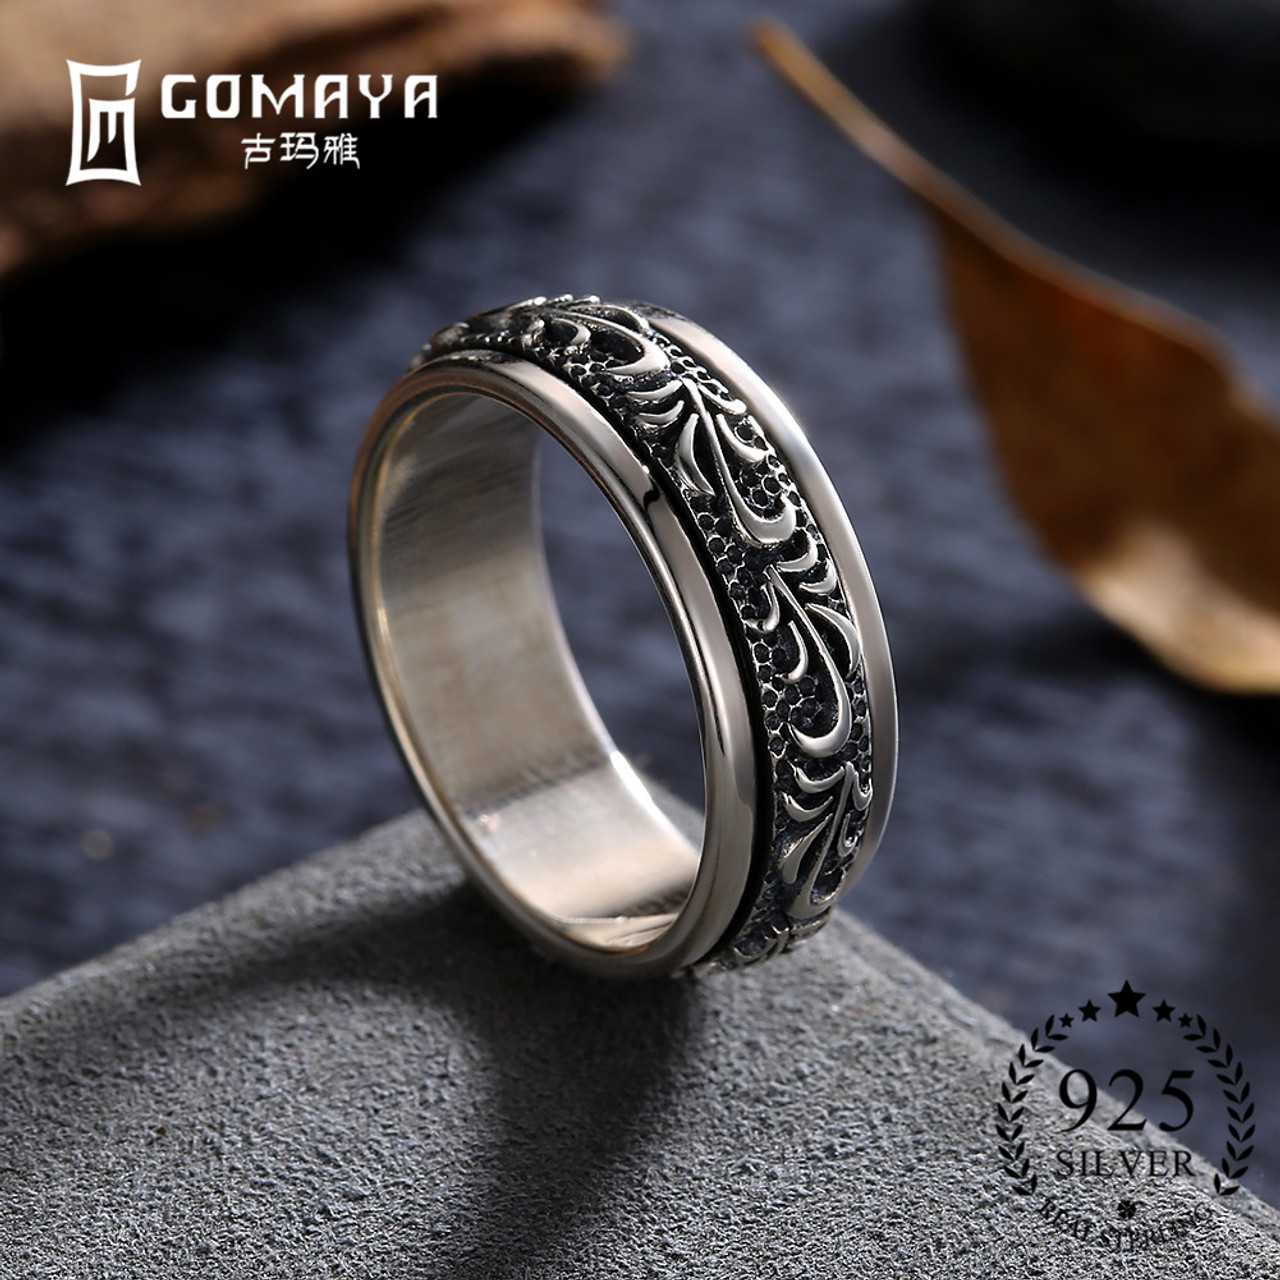 4a003968e7cd3 GOMAYA Carving Flower 925 Sterling Silver Rings Gothic Vintage Rock Punk  Cocktail Fine Jewelry for Men and Women Anillos